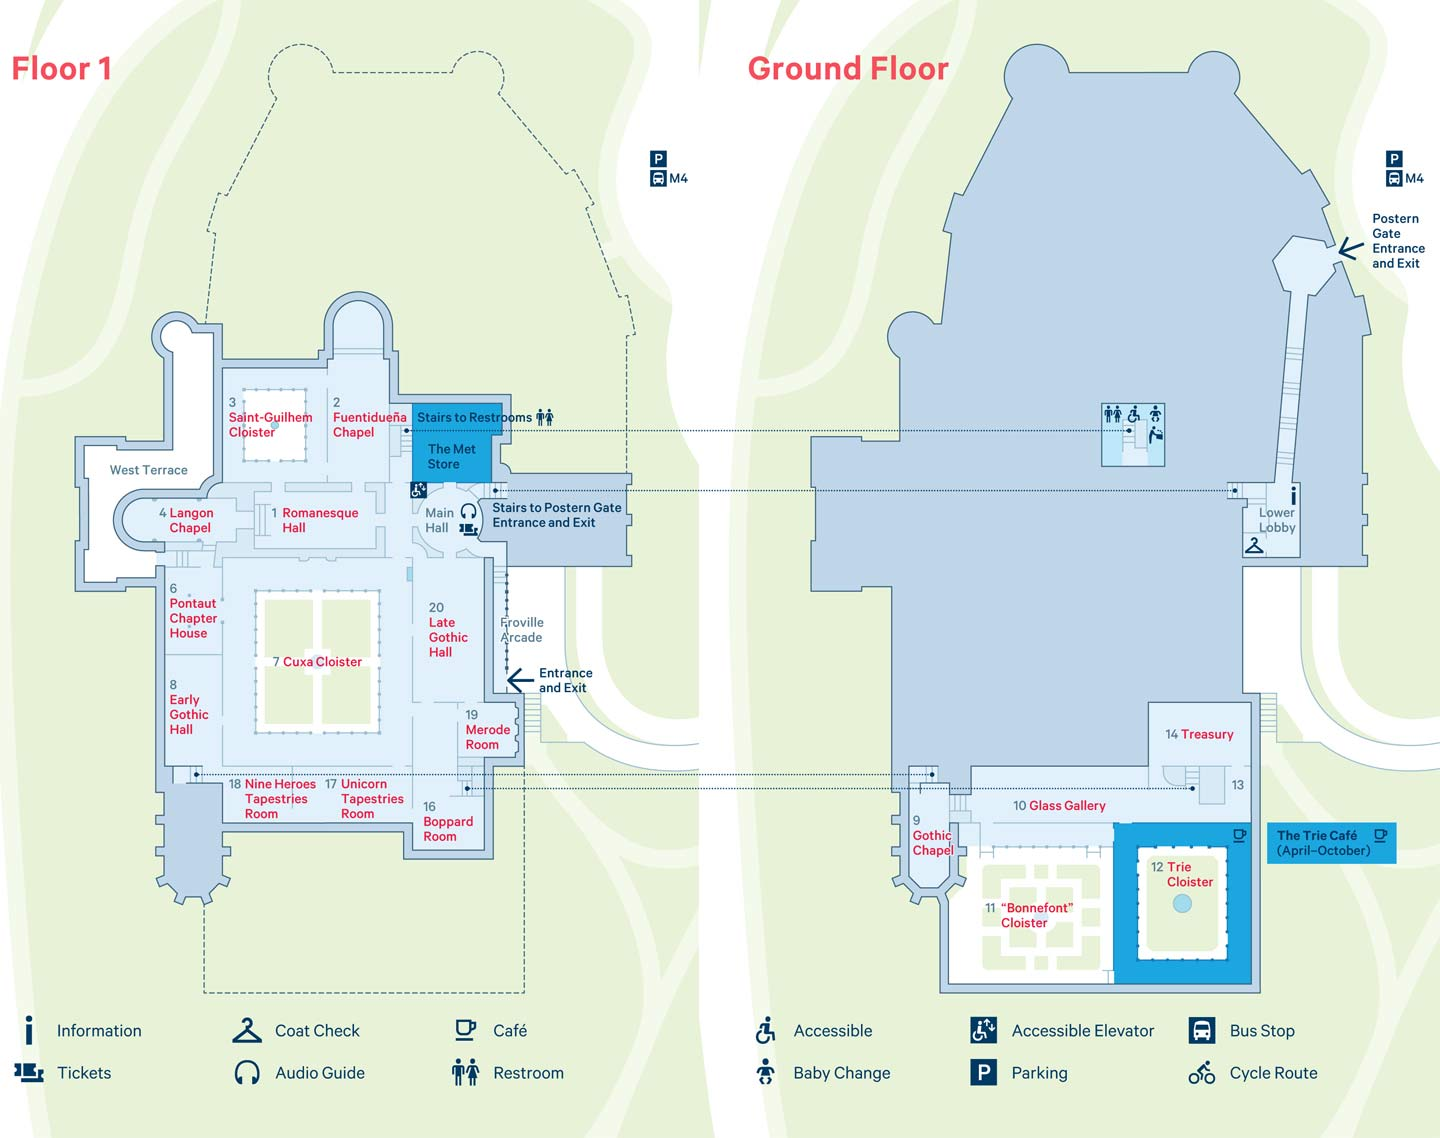 Map of The Met Cloisters | Floor 1 and Ground Floor